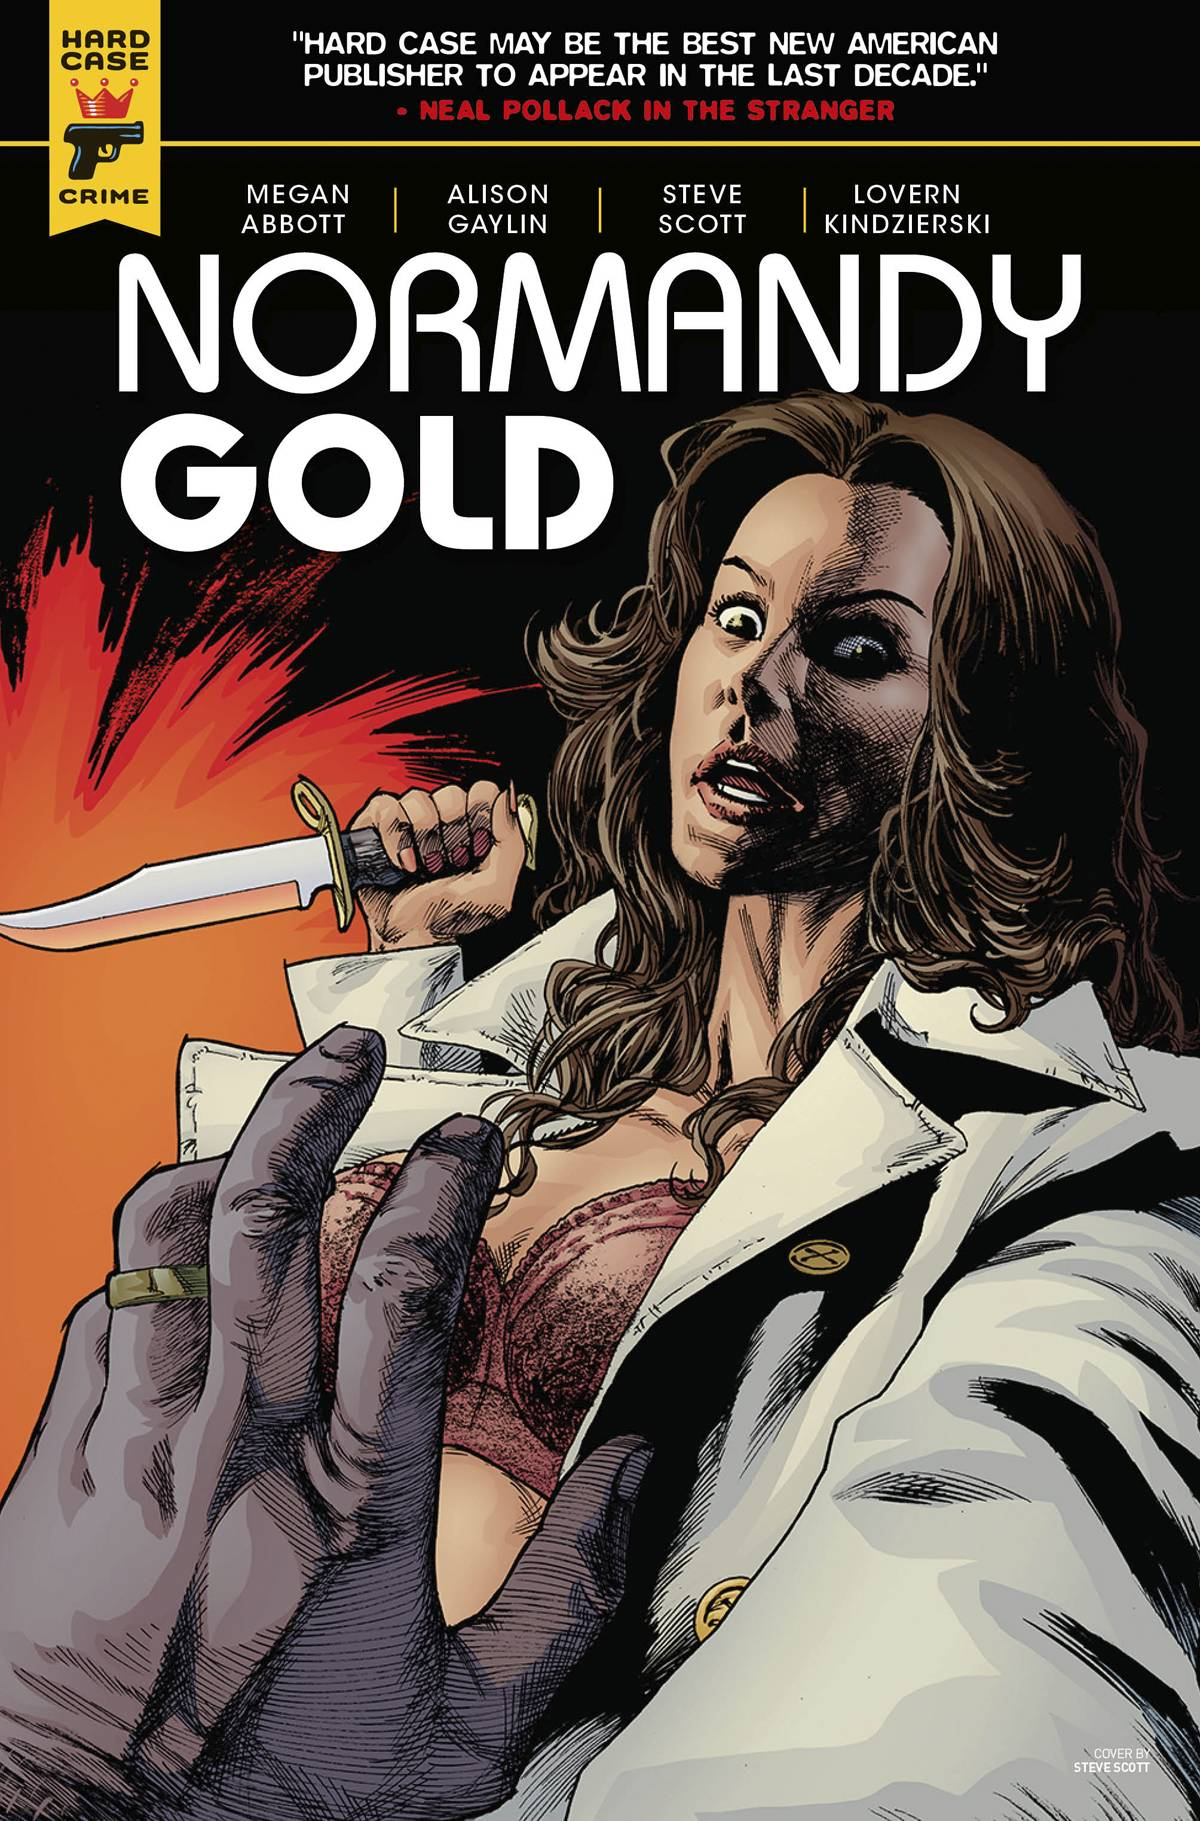 NORMANDY GOLD#3